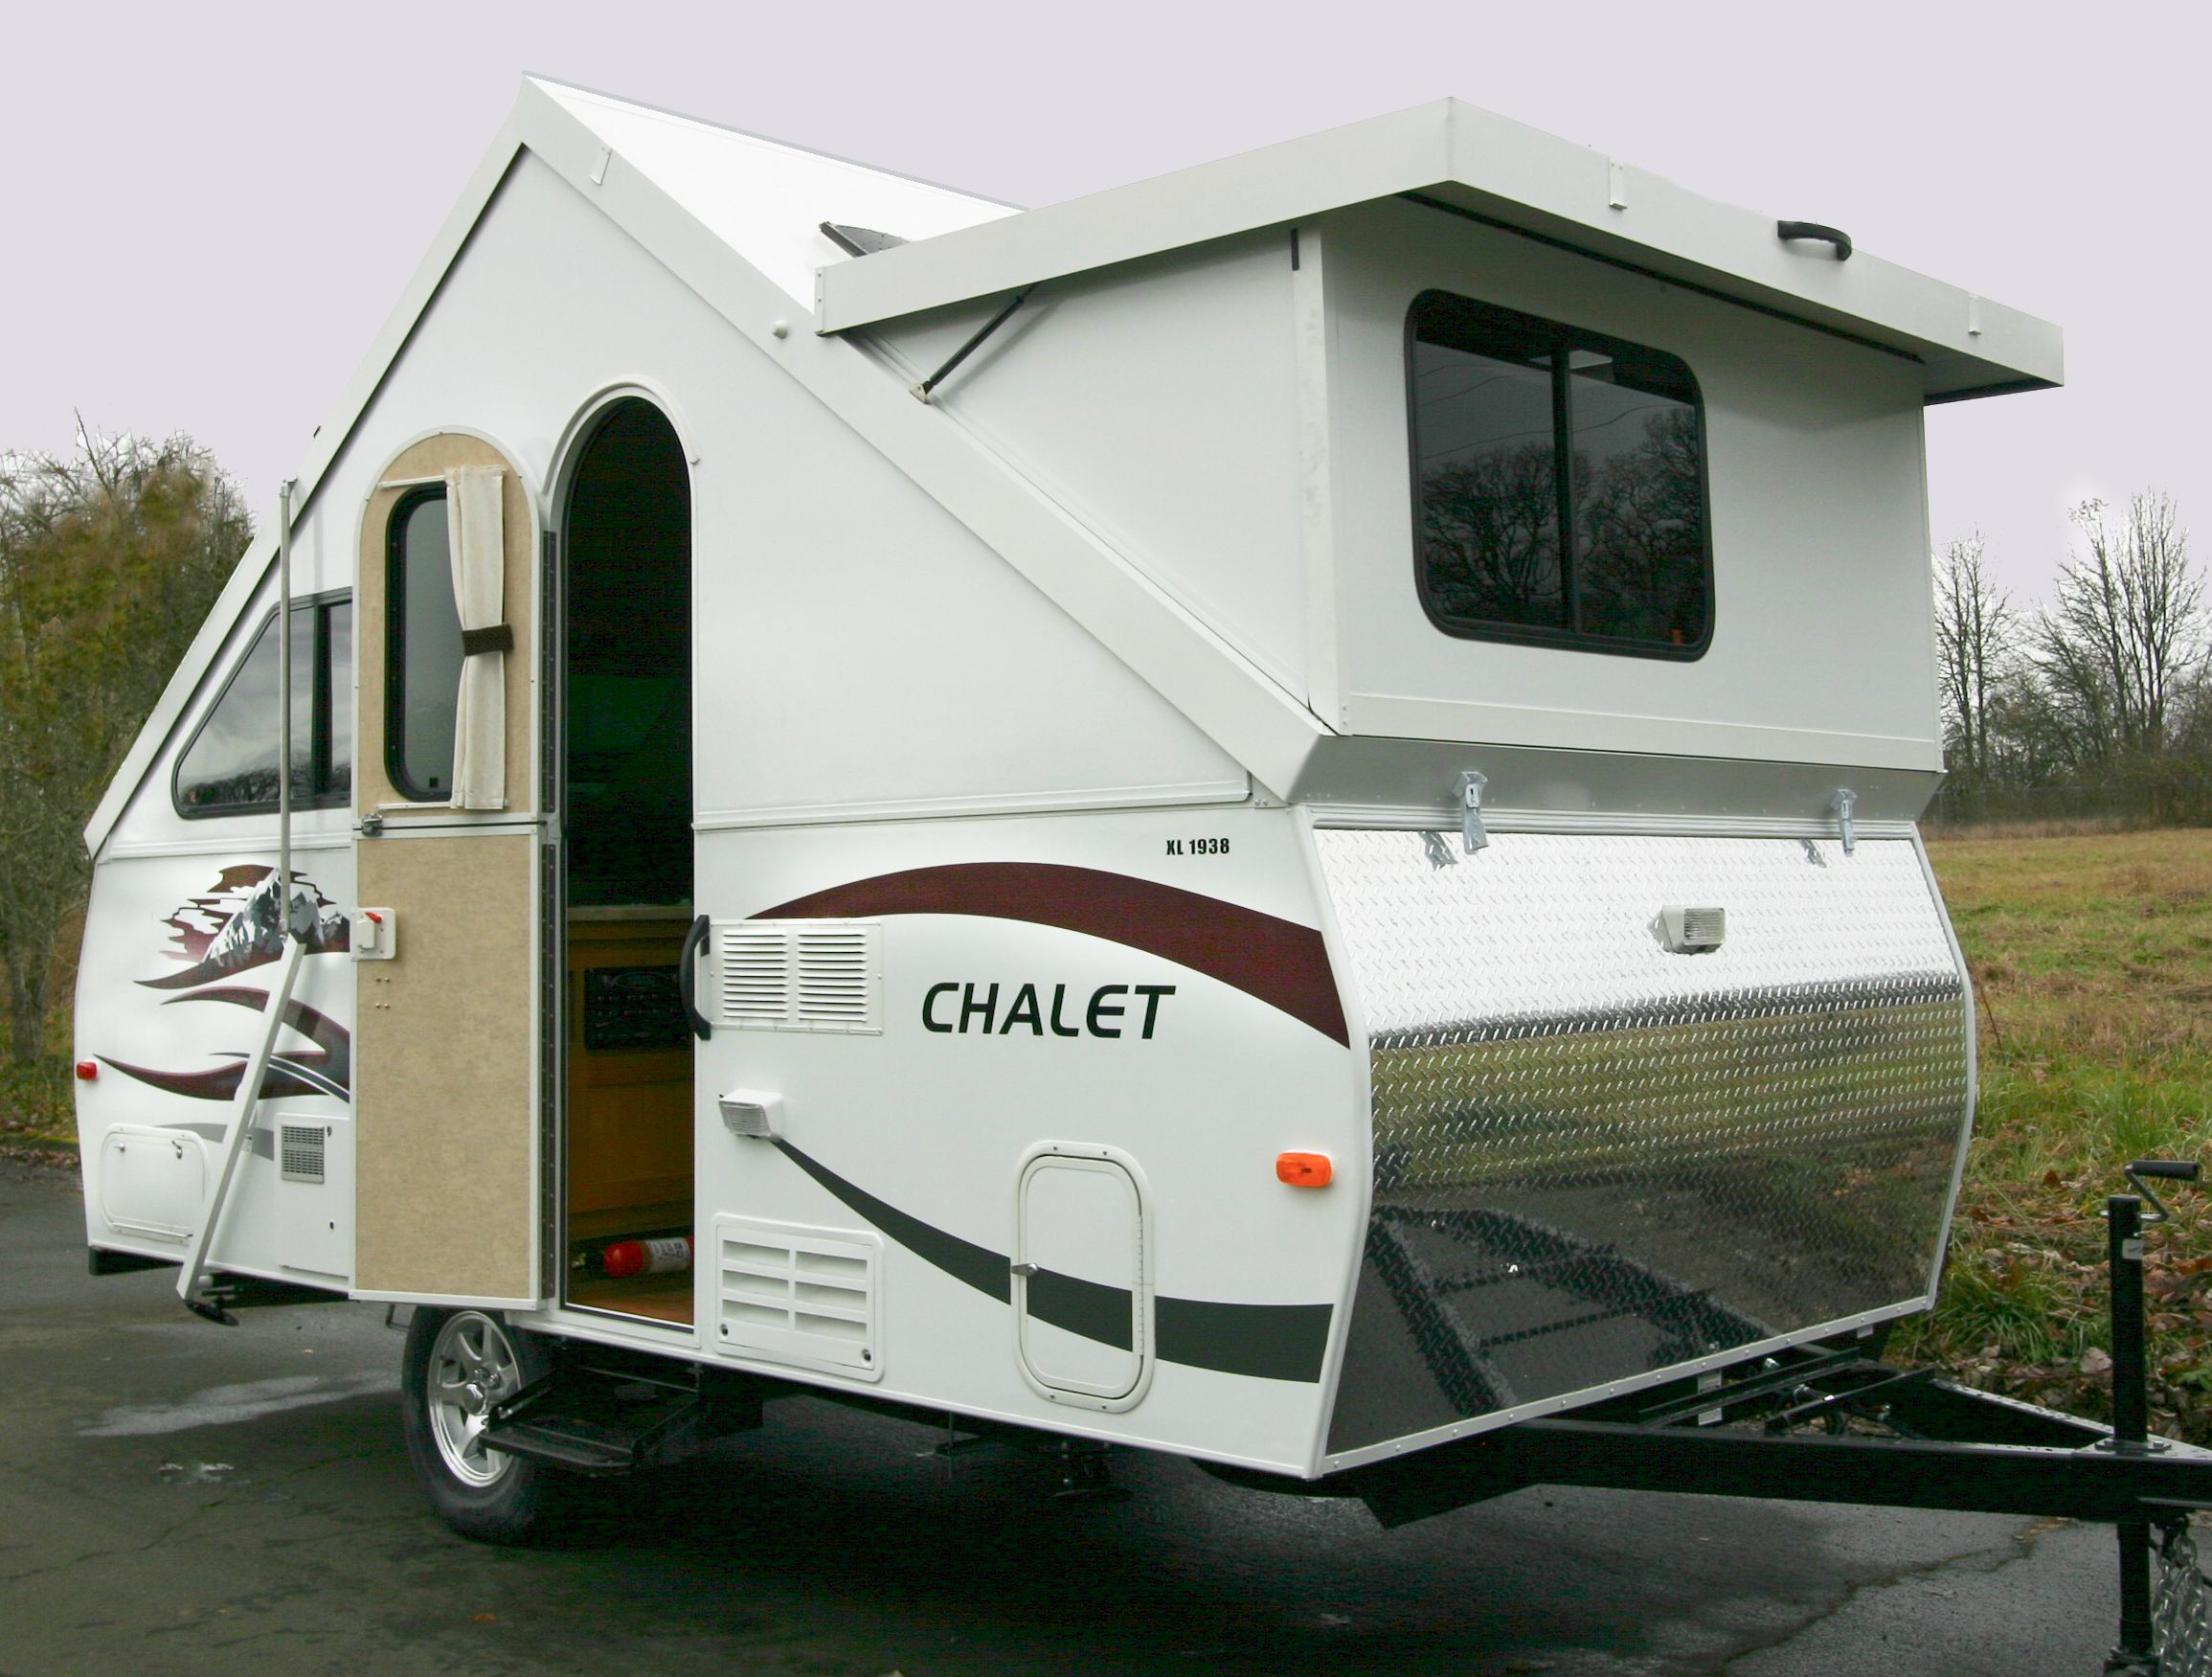 Sweet folding trailers with bathrooms. | Camping camping camping ...